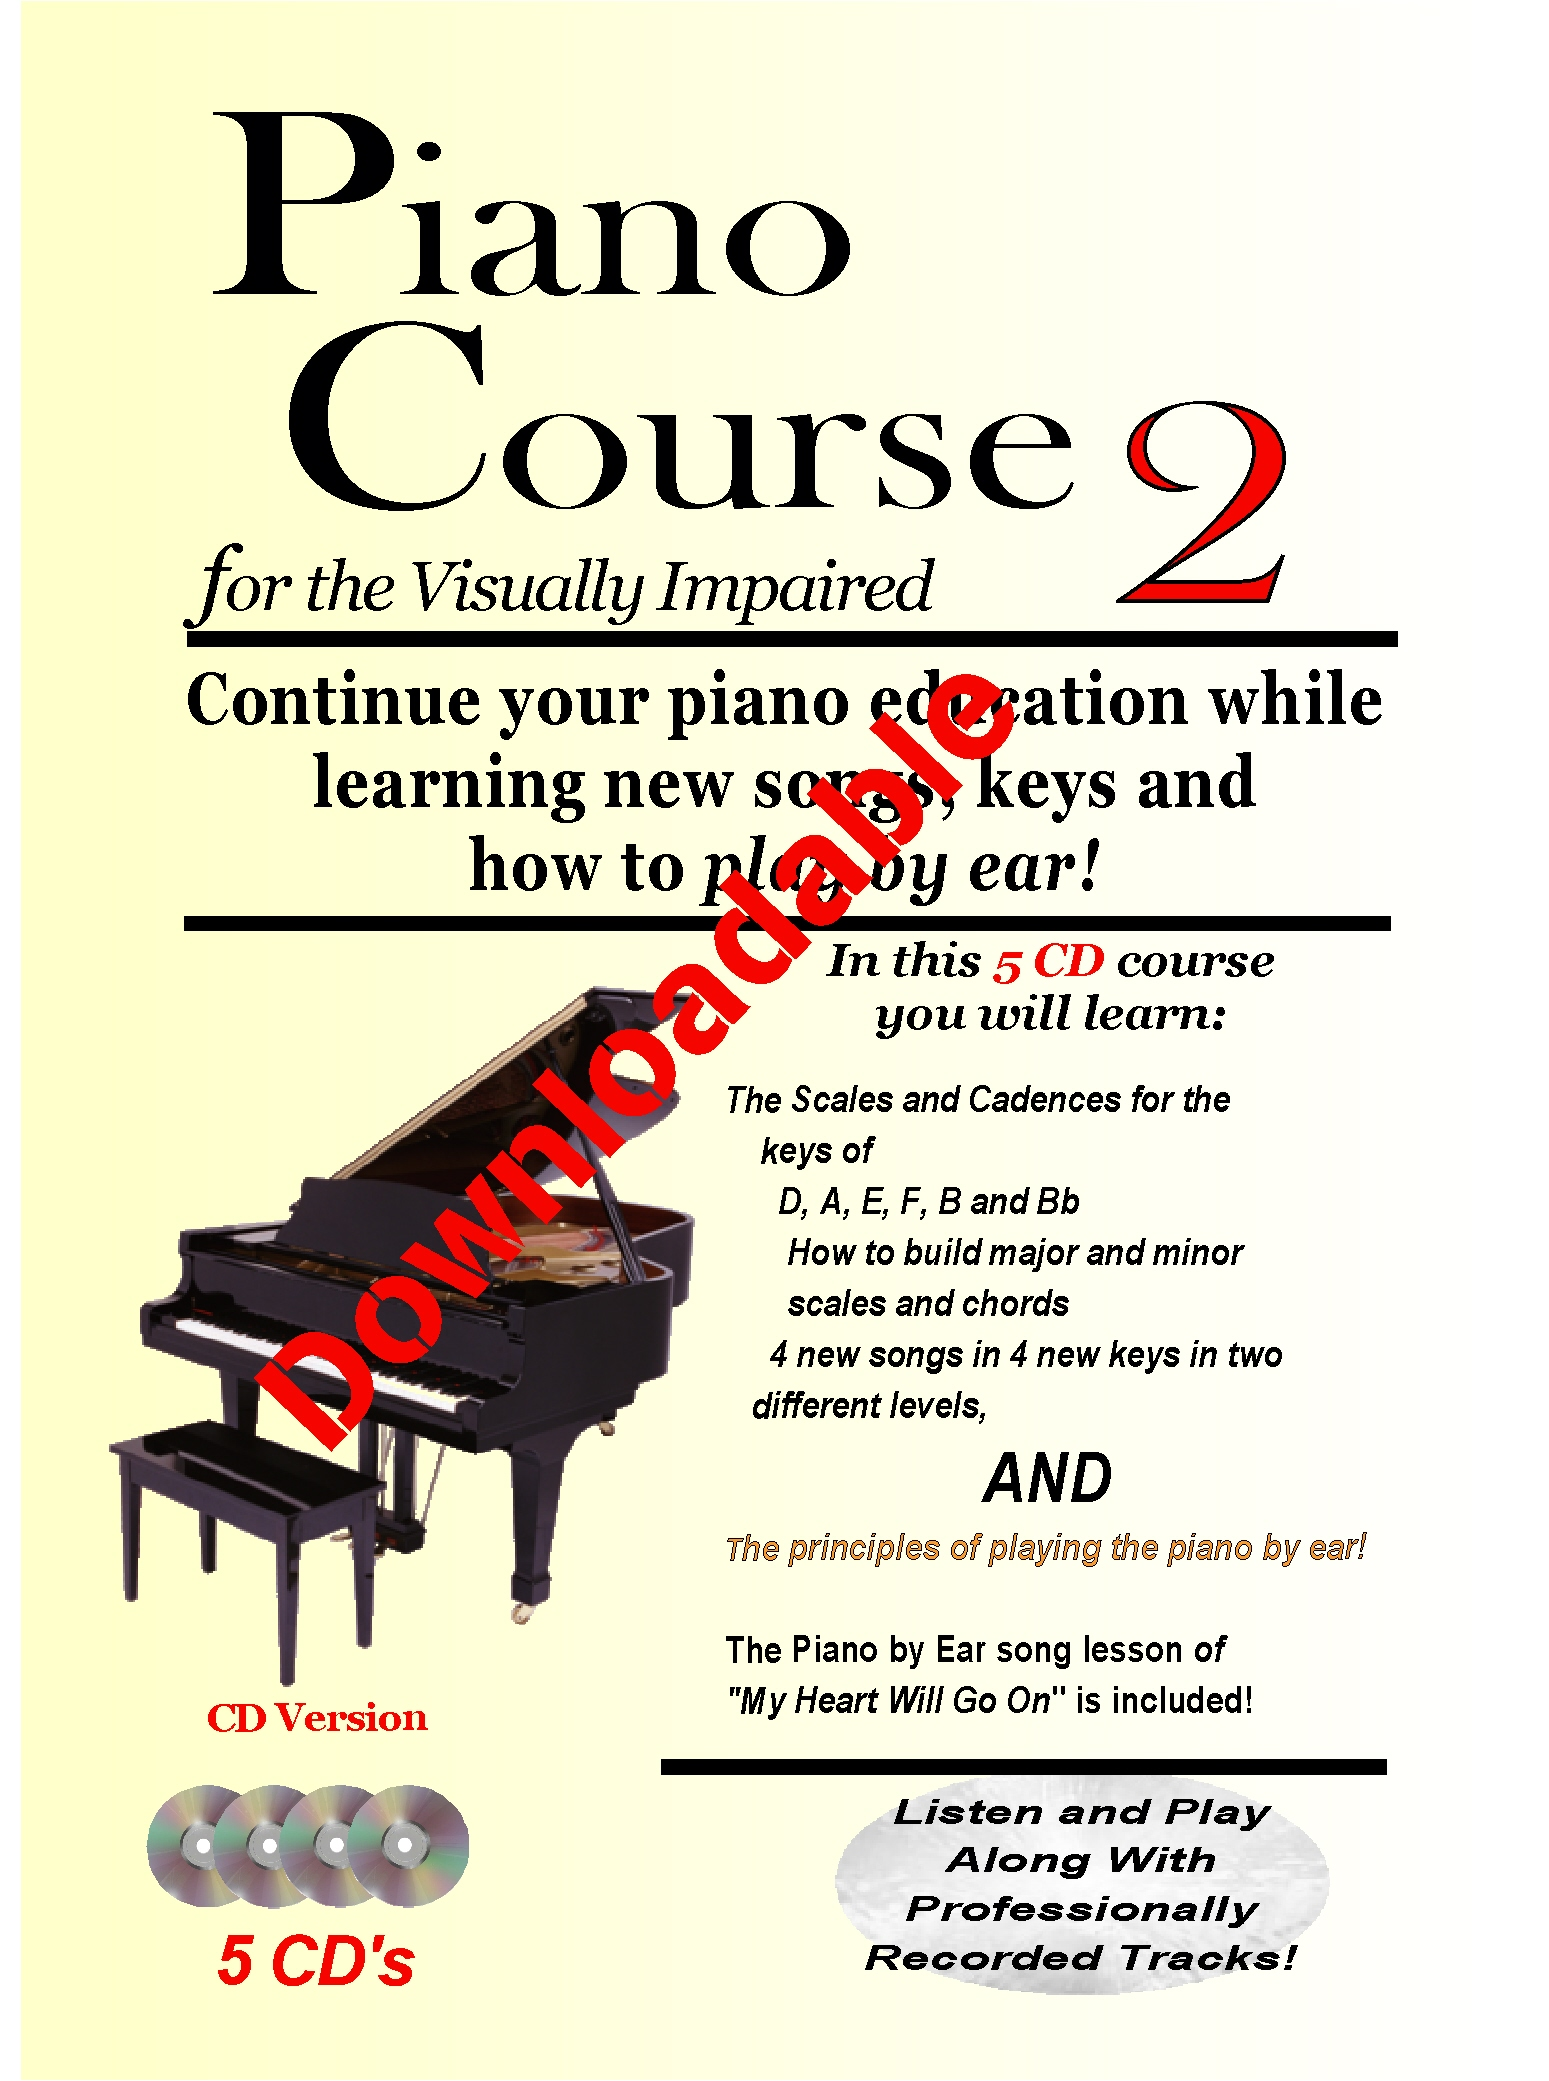 Piano Course 2 for the Visually Impaired Downloadable